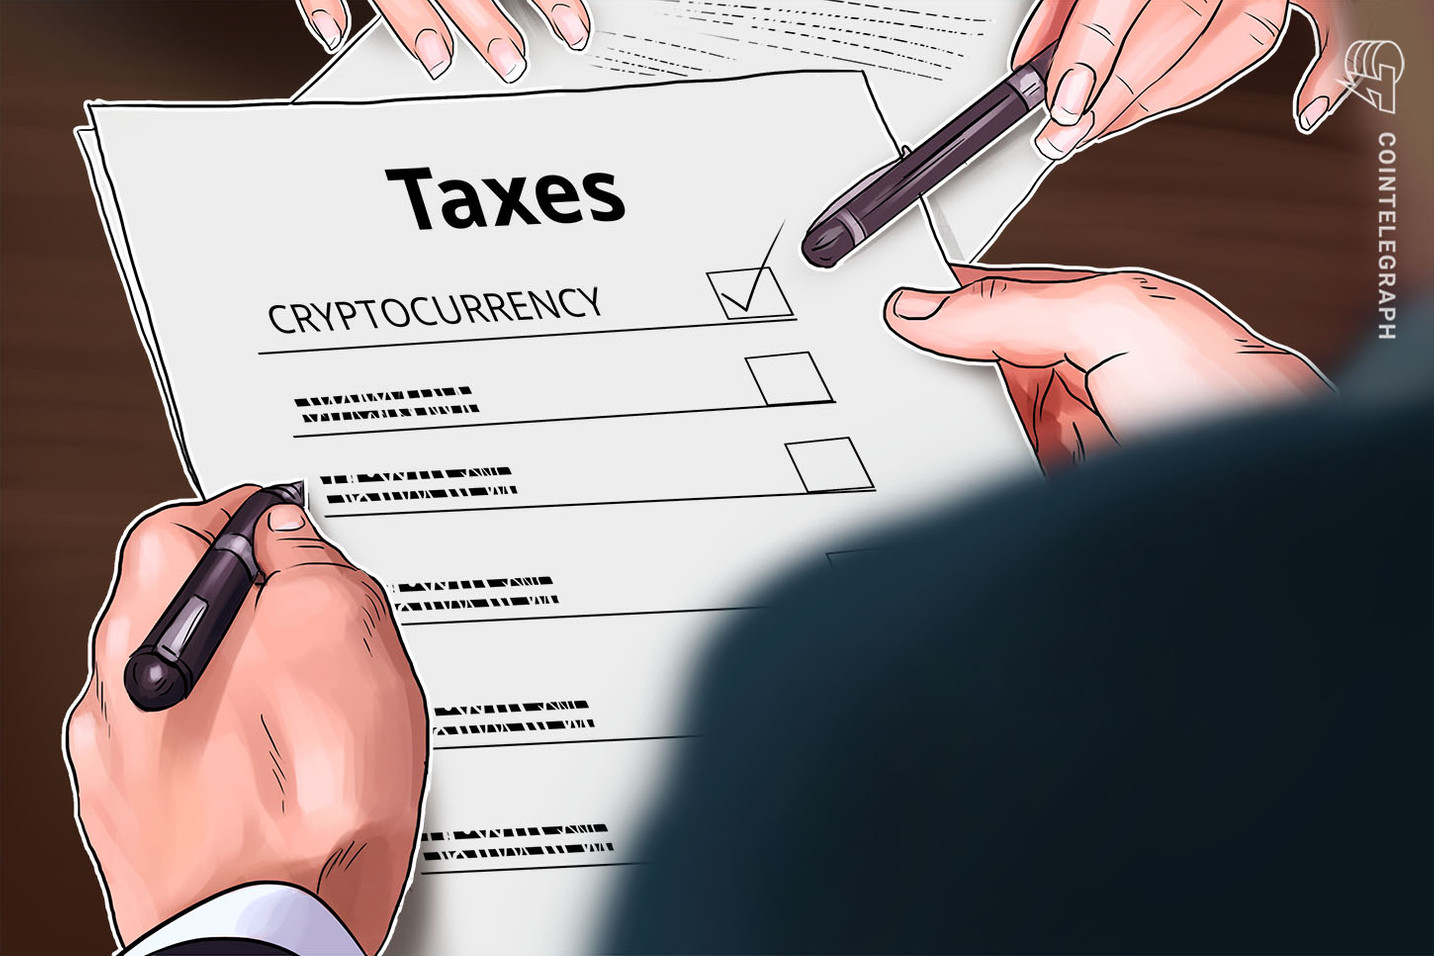 Two Thirds of Users Support Taxation of Crypto Assets